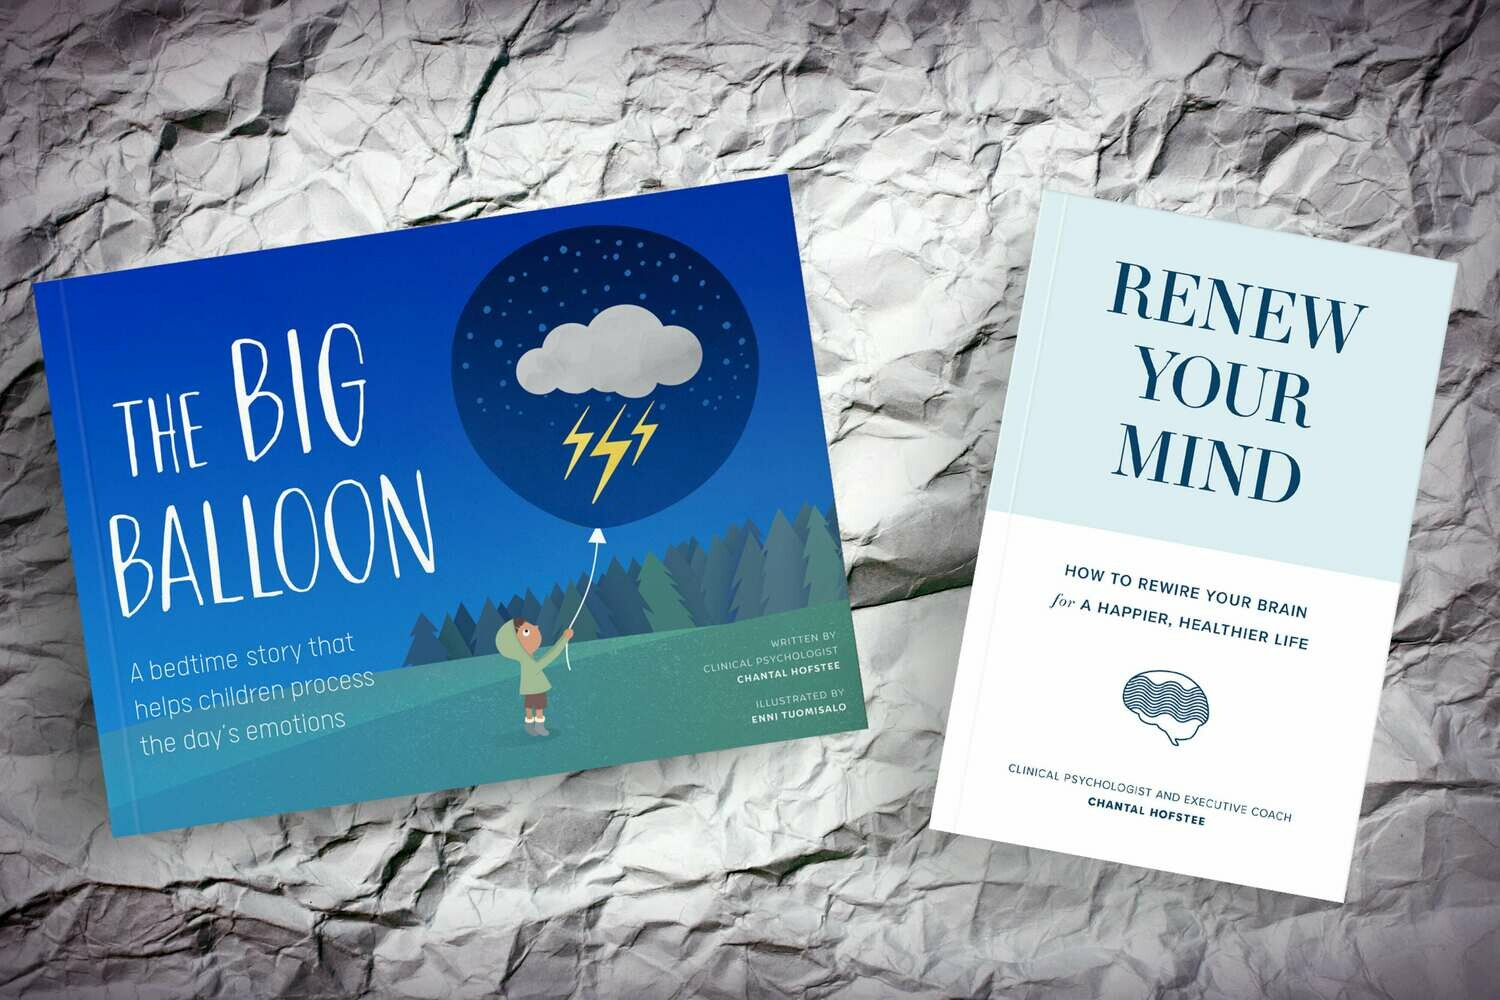 Combi Special - The Big Balloon & Renew Your Mind